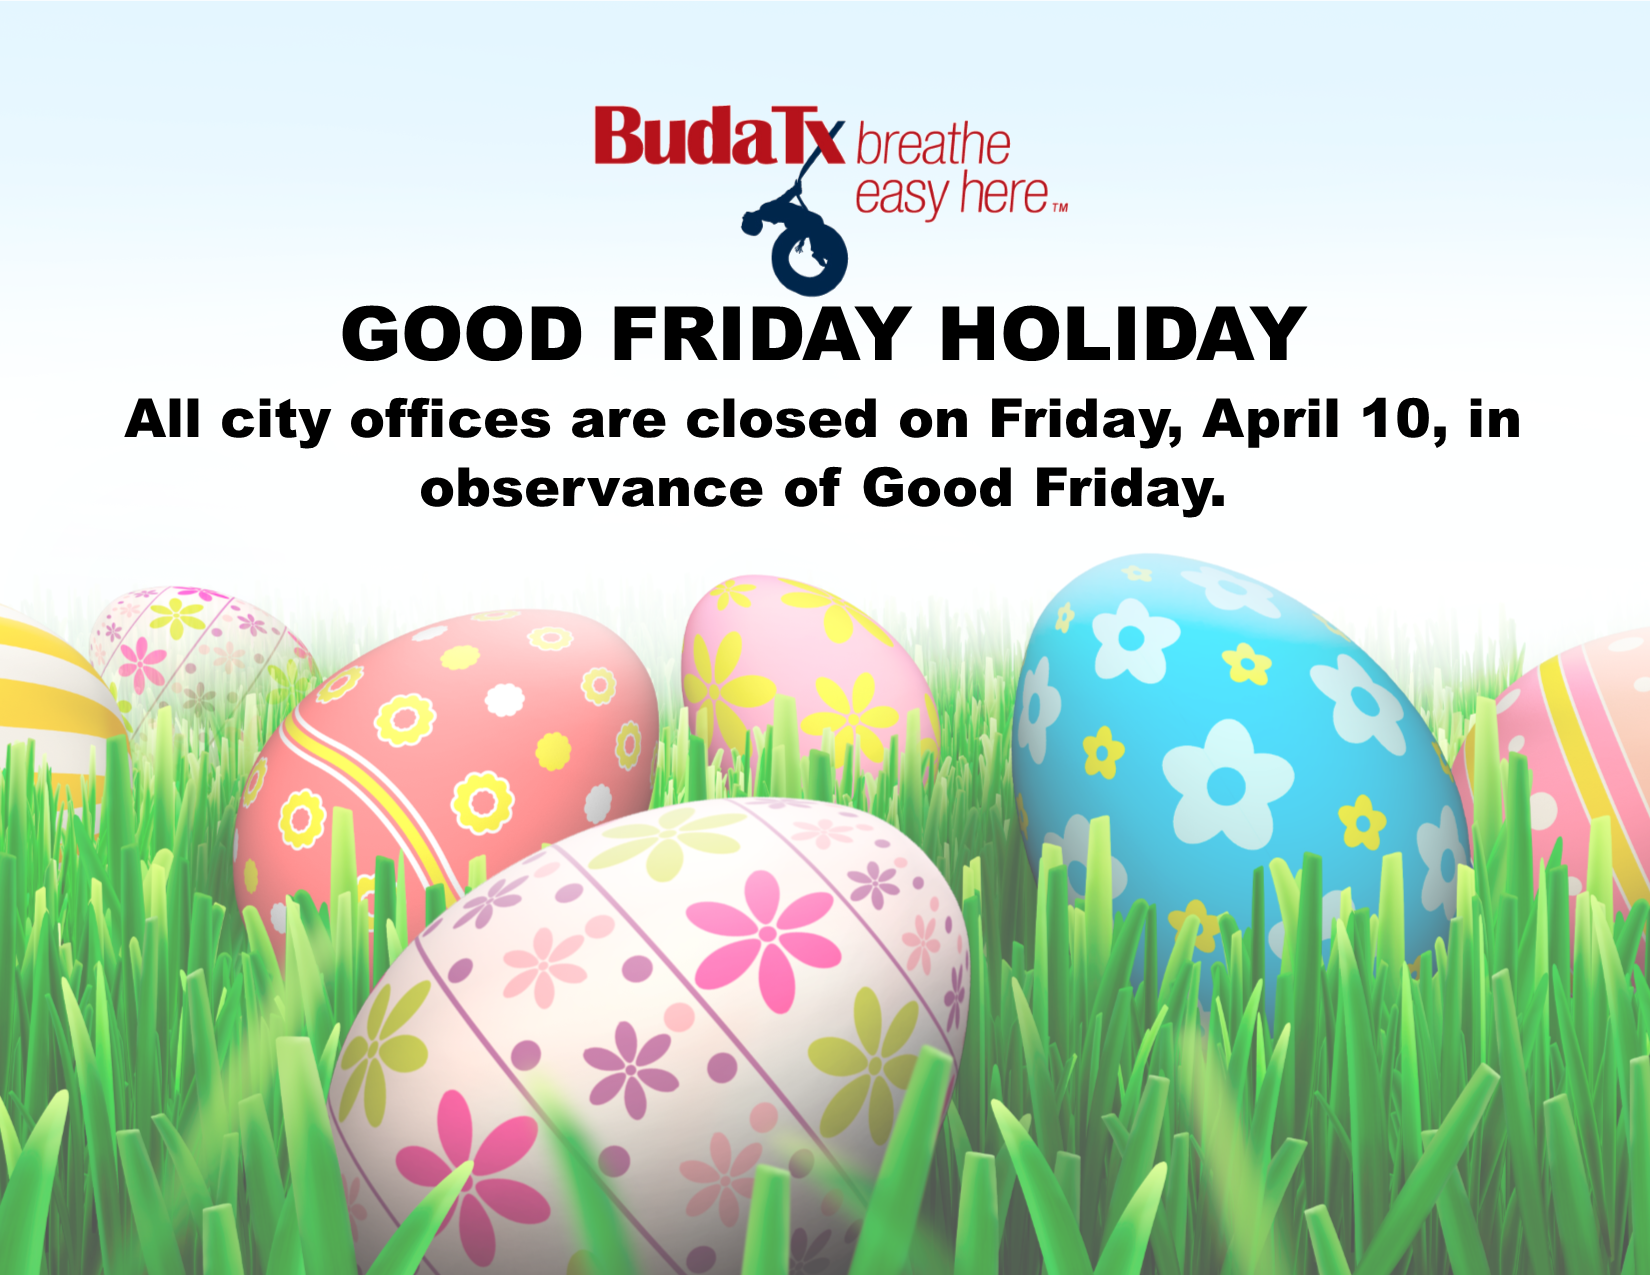 Good Friday Holiday - April 10, 2020